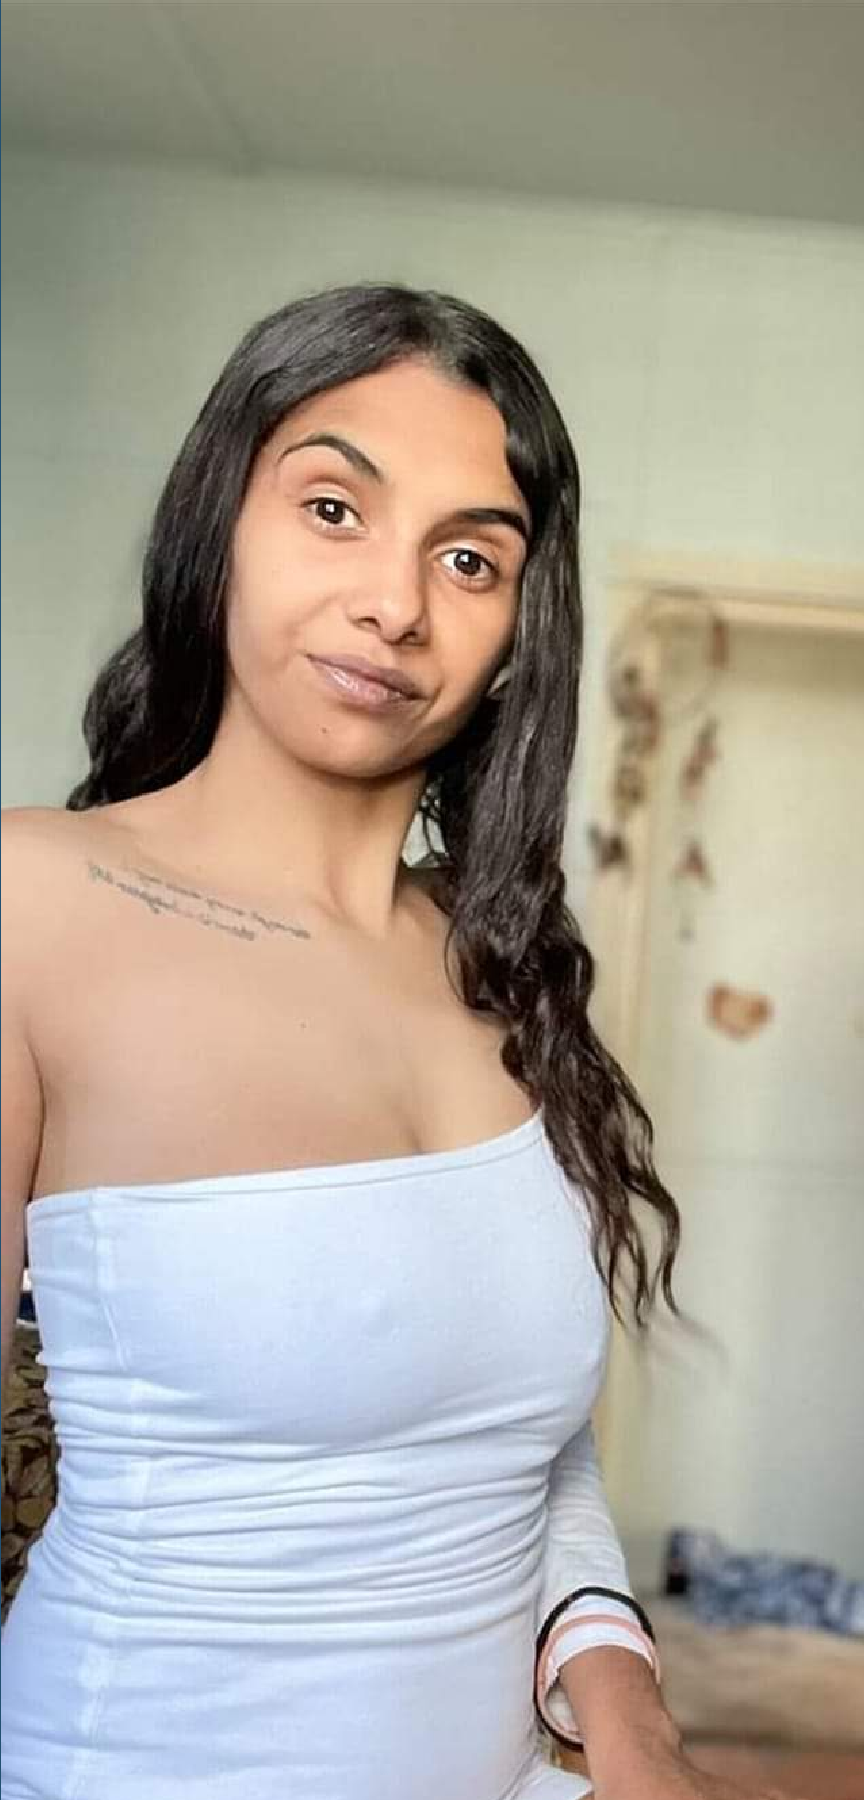 , Body found in search for young South Australian woman missing for weeks, The World Live Breaking News Coverage & Updates IN ENGLISH